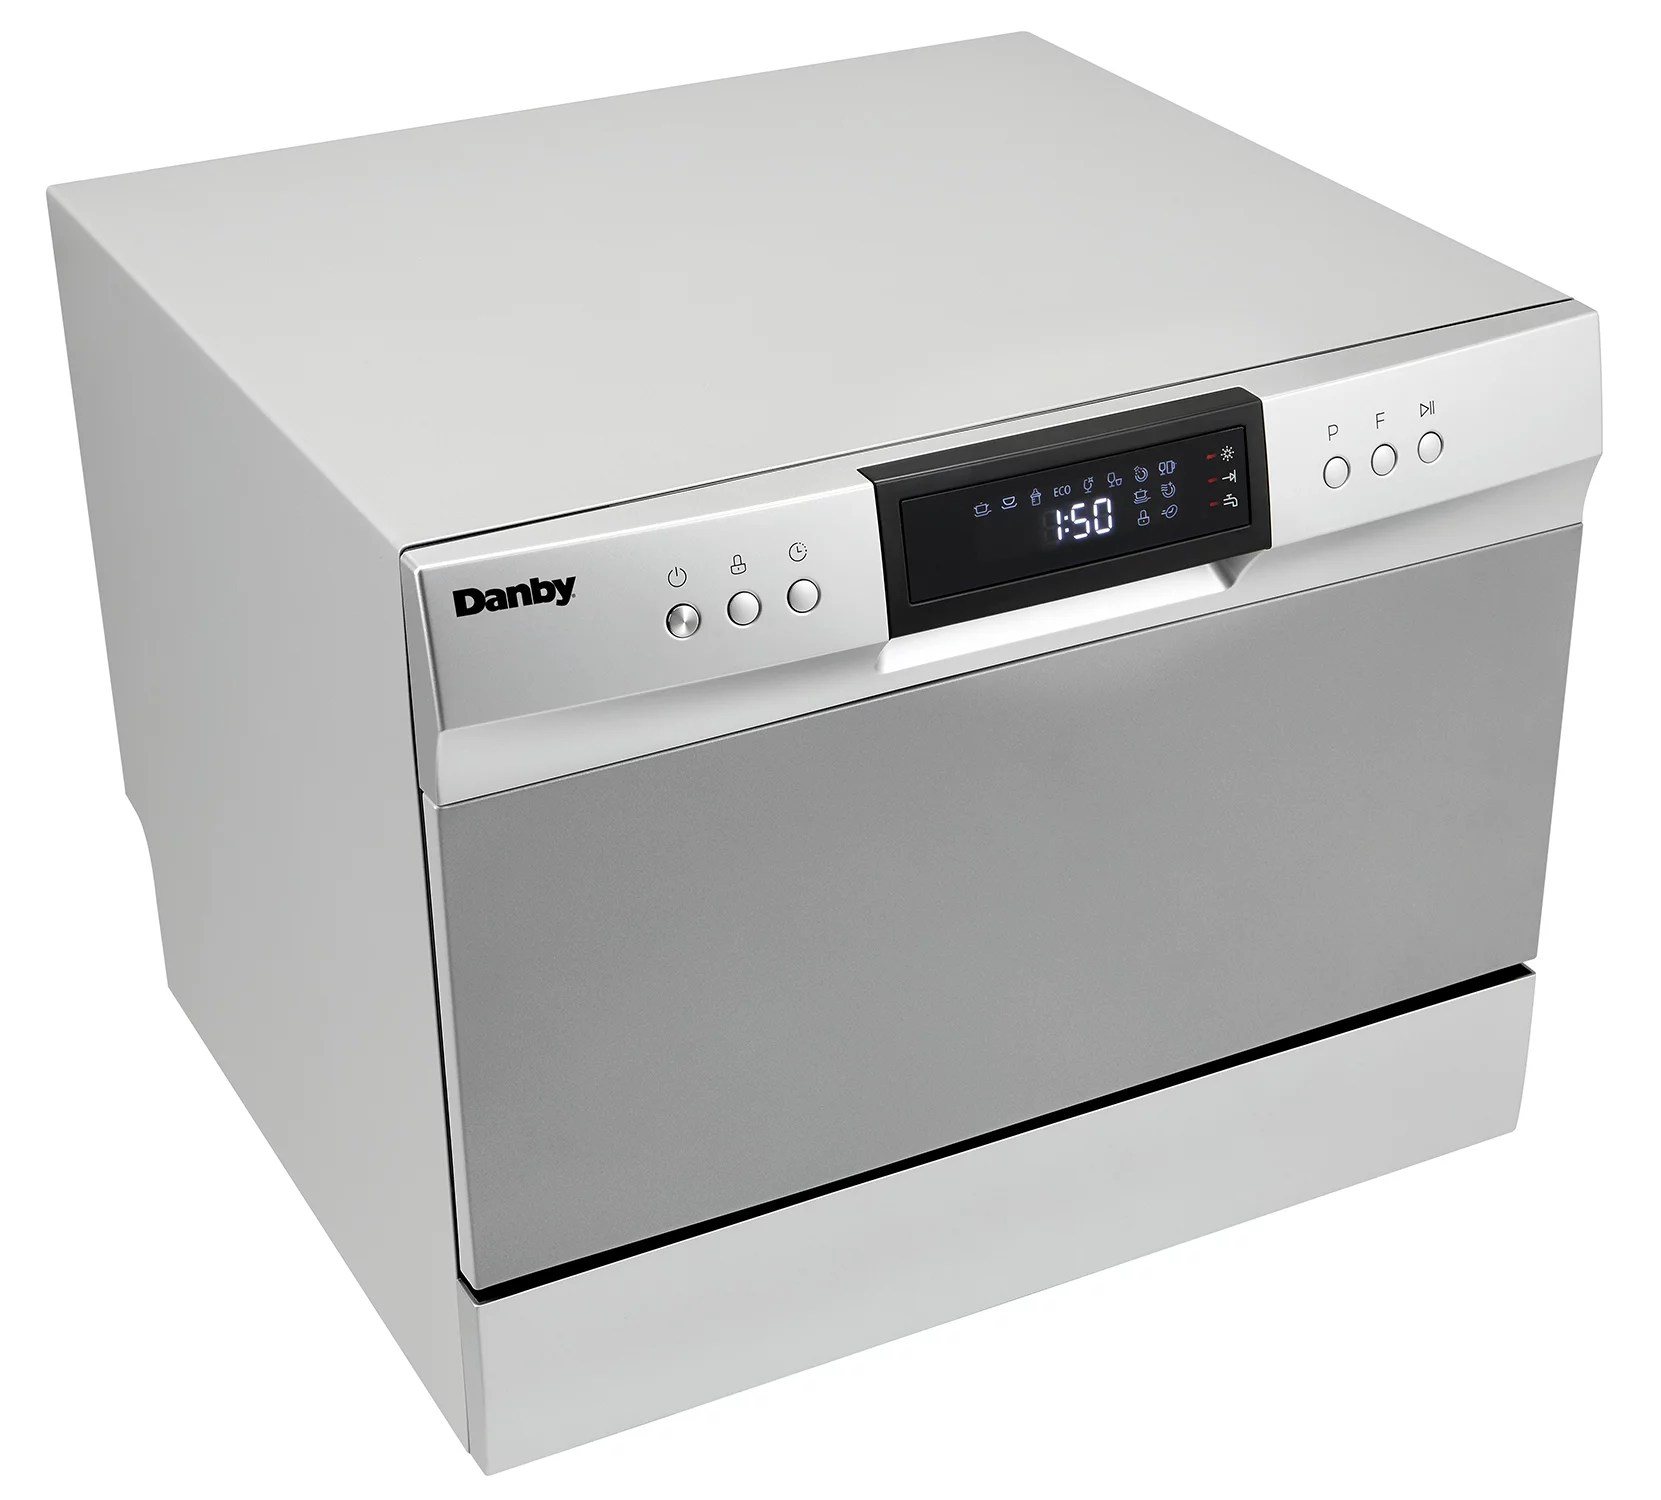 Danby 6 Place Setting Countertop Dishwasher In Silver Walmart Com Walmart Com